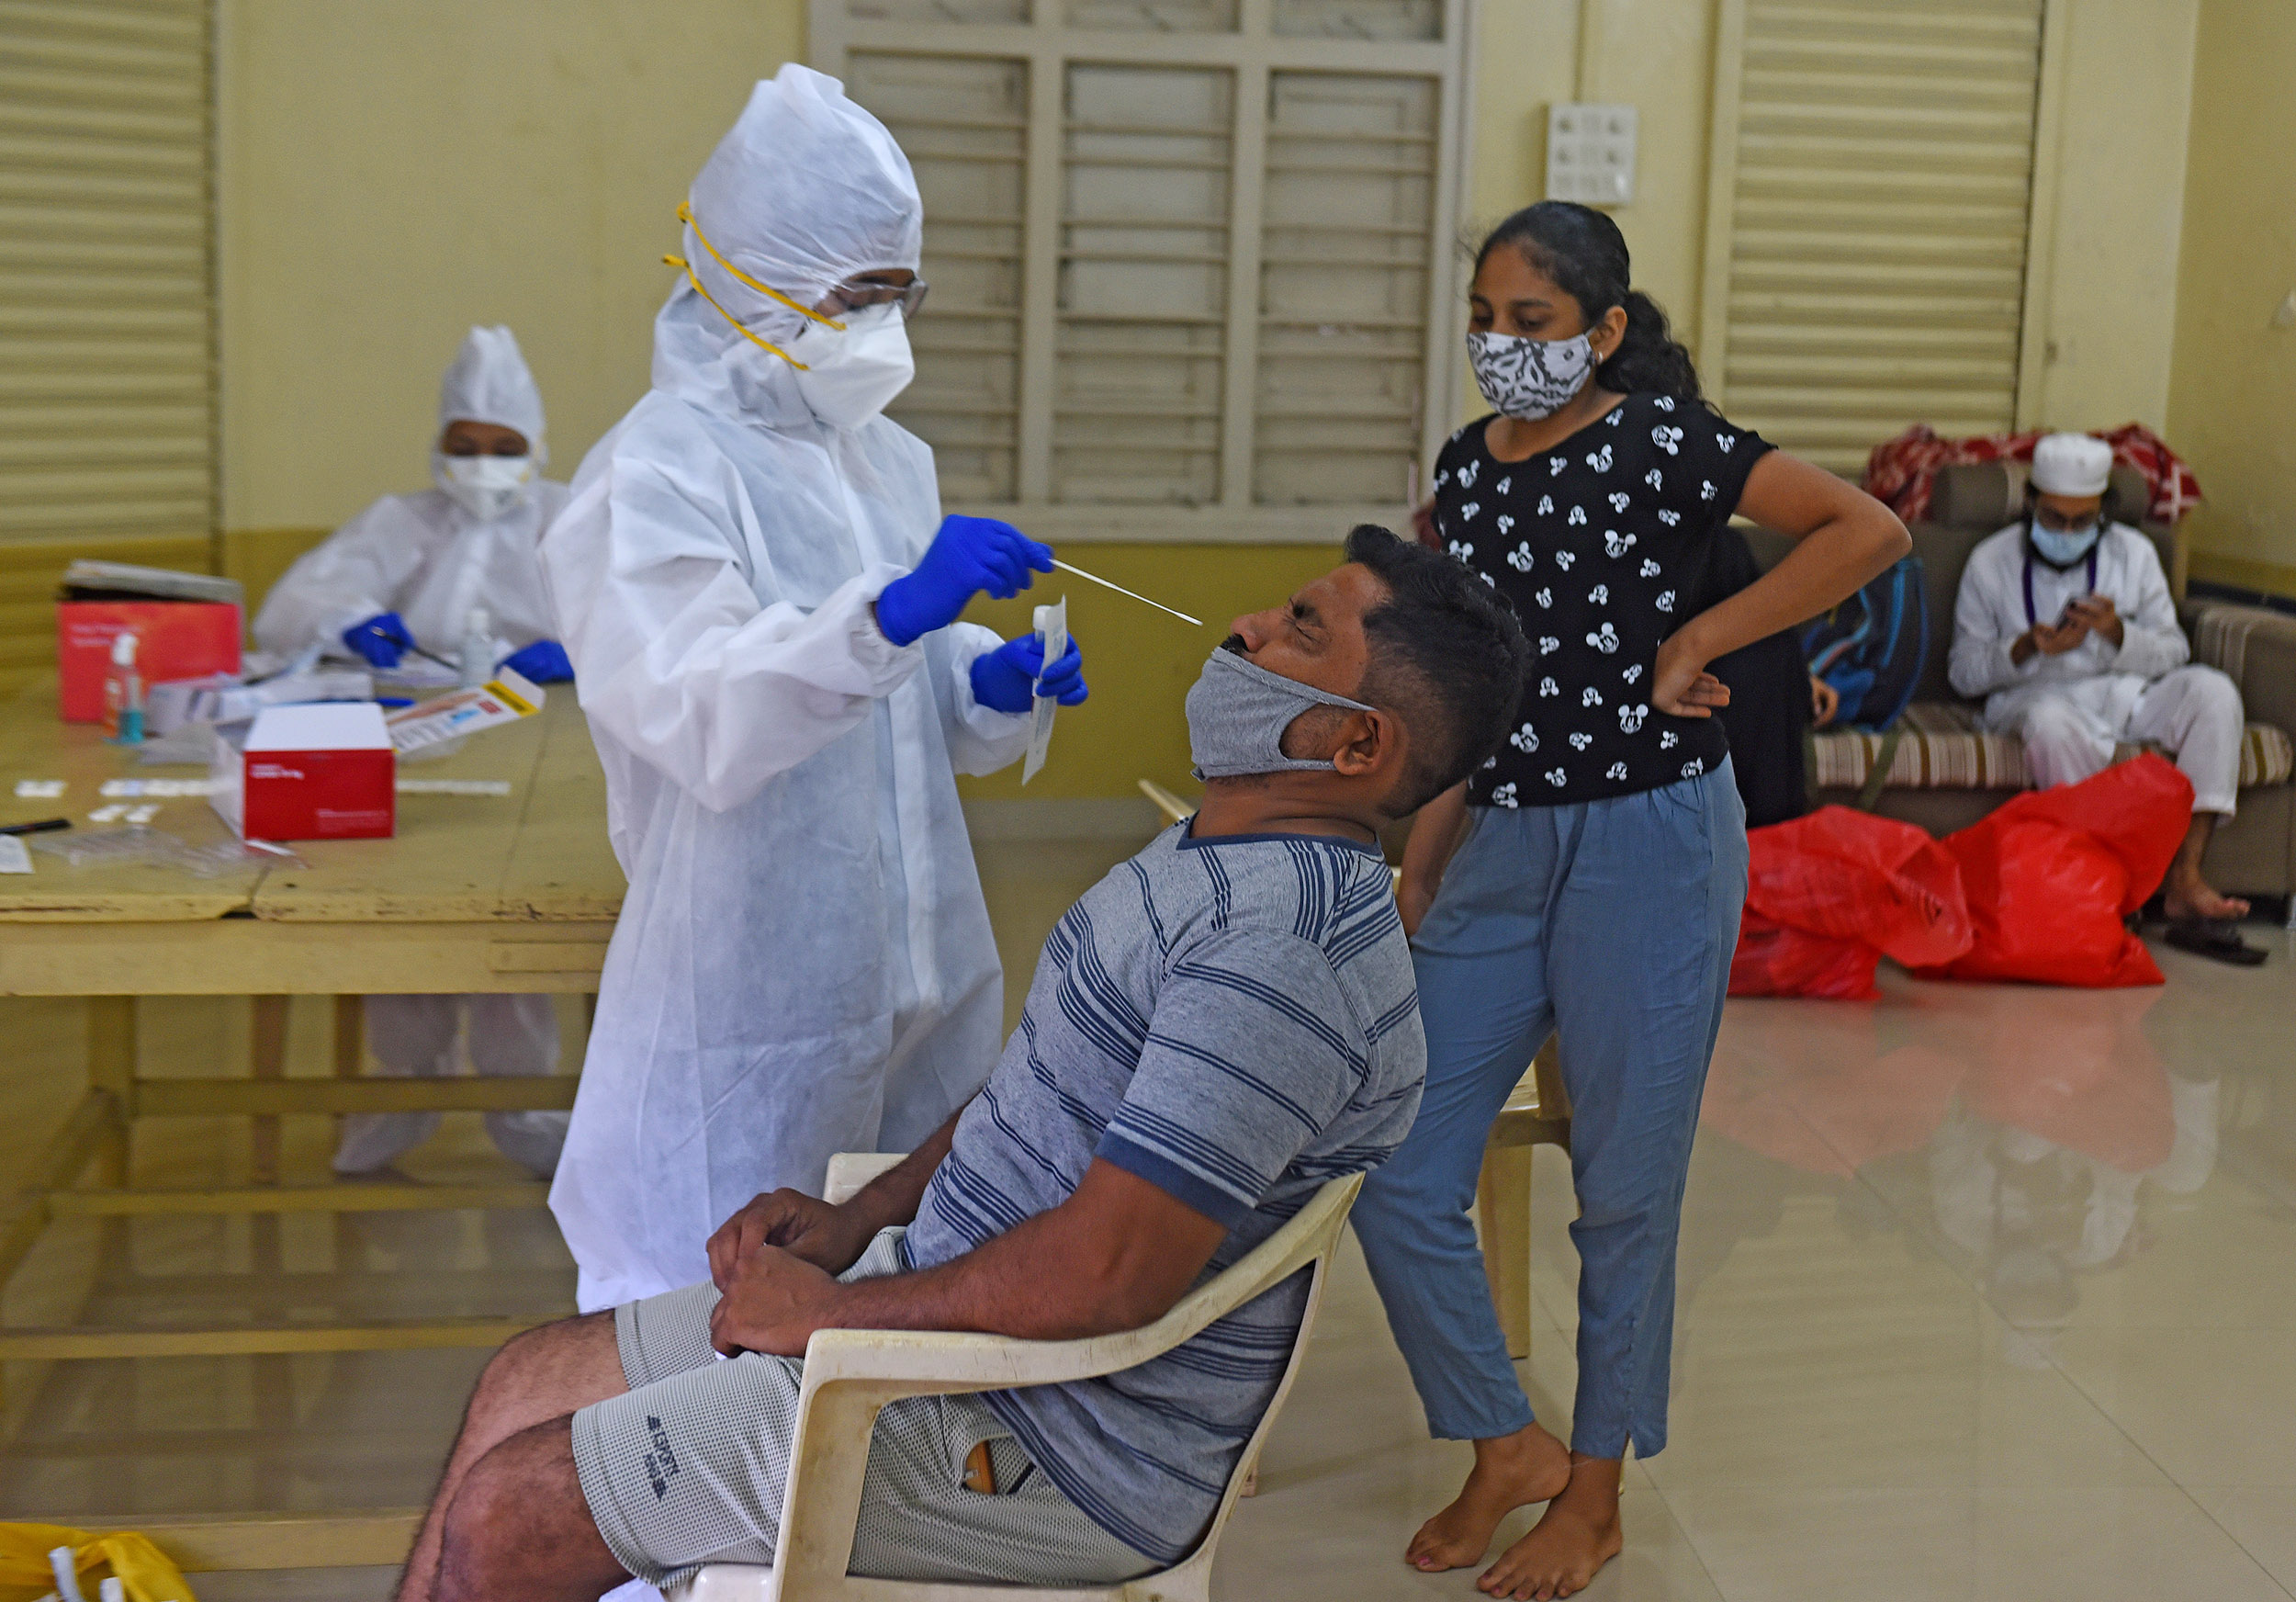 Medical workers conduct Covid-19 testing on September 26, in Mumbai, India.